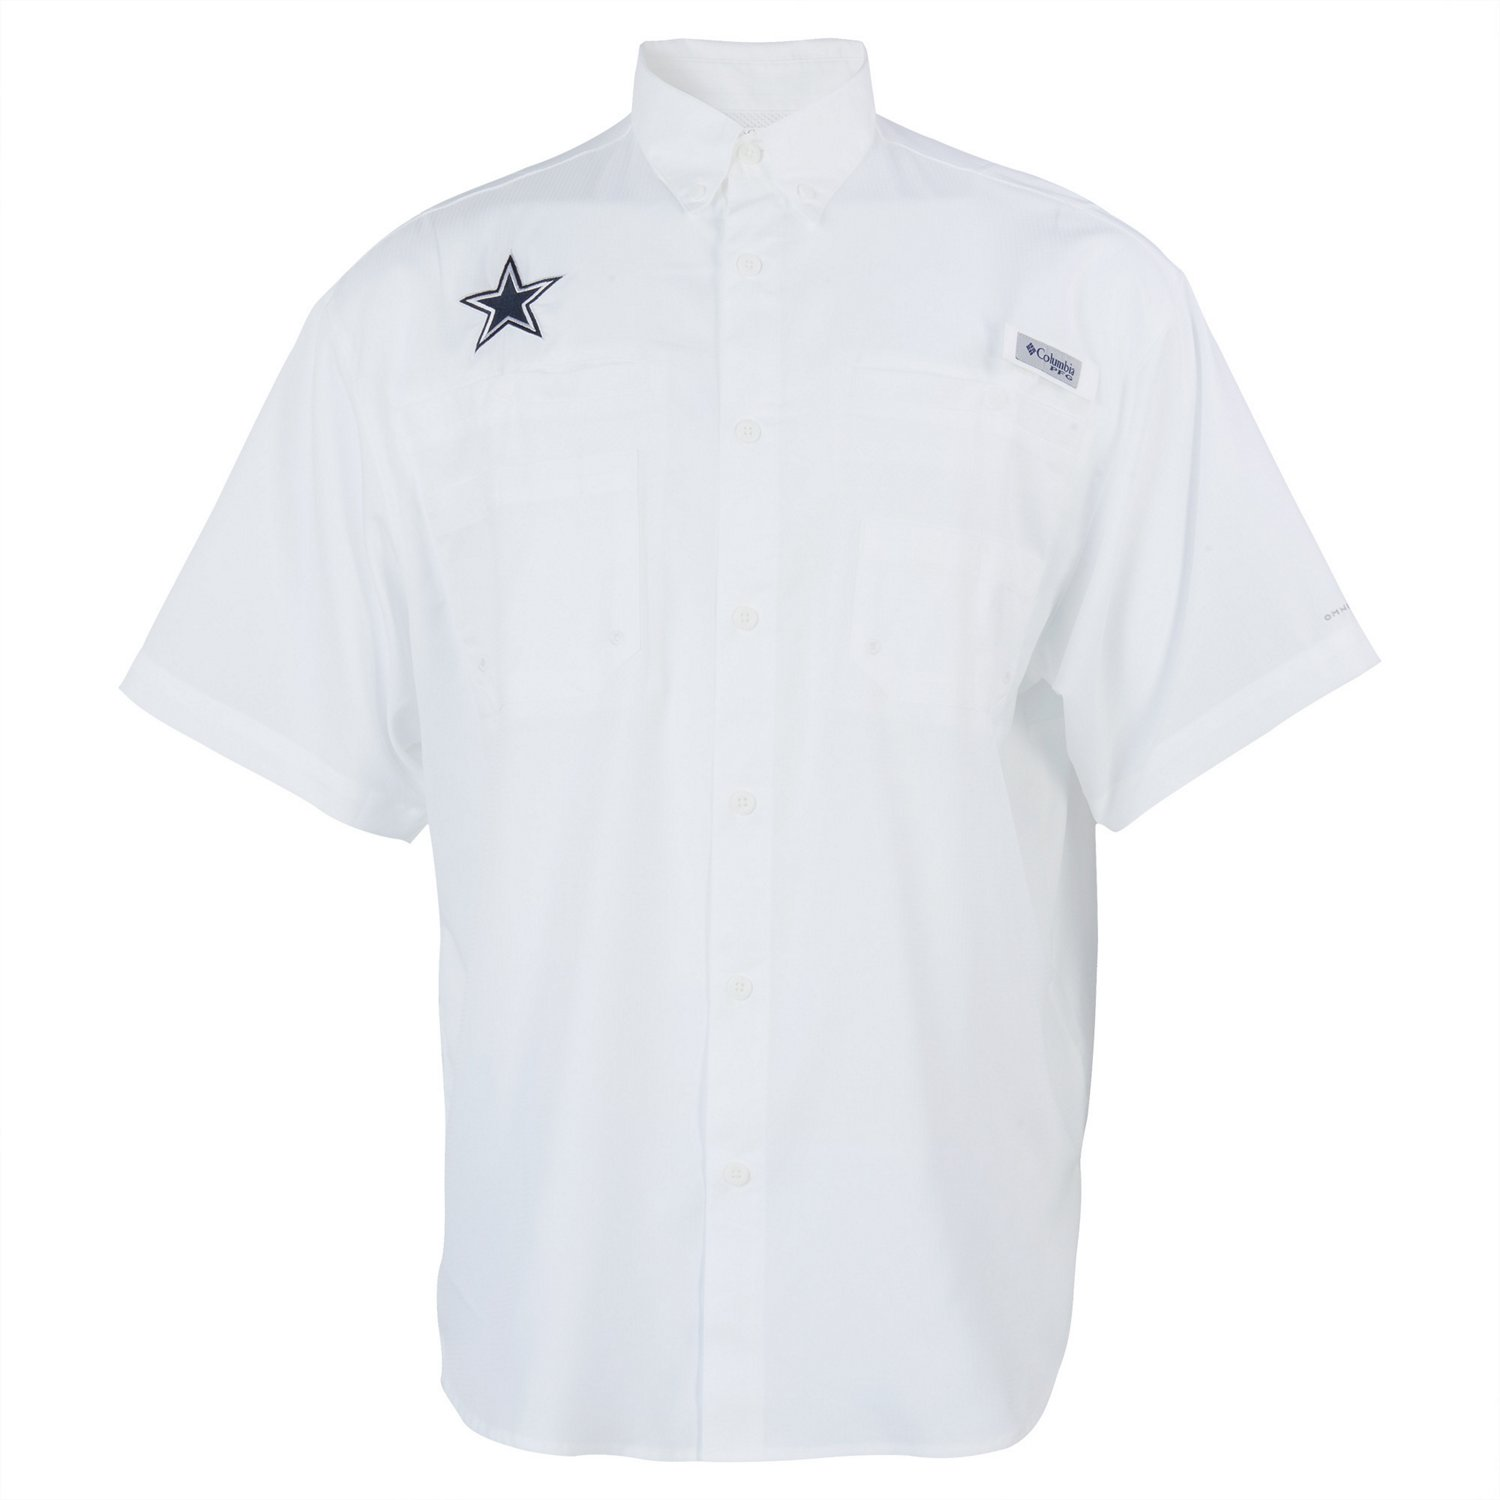 d94ff33c6dd4 Display product reviews for Columbia Sportswear Men s Dallas Cowboys PFG  Tamiami Fishing Shirt